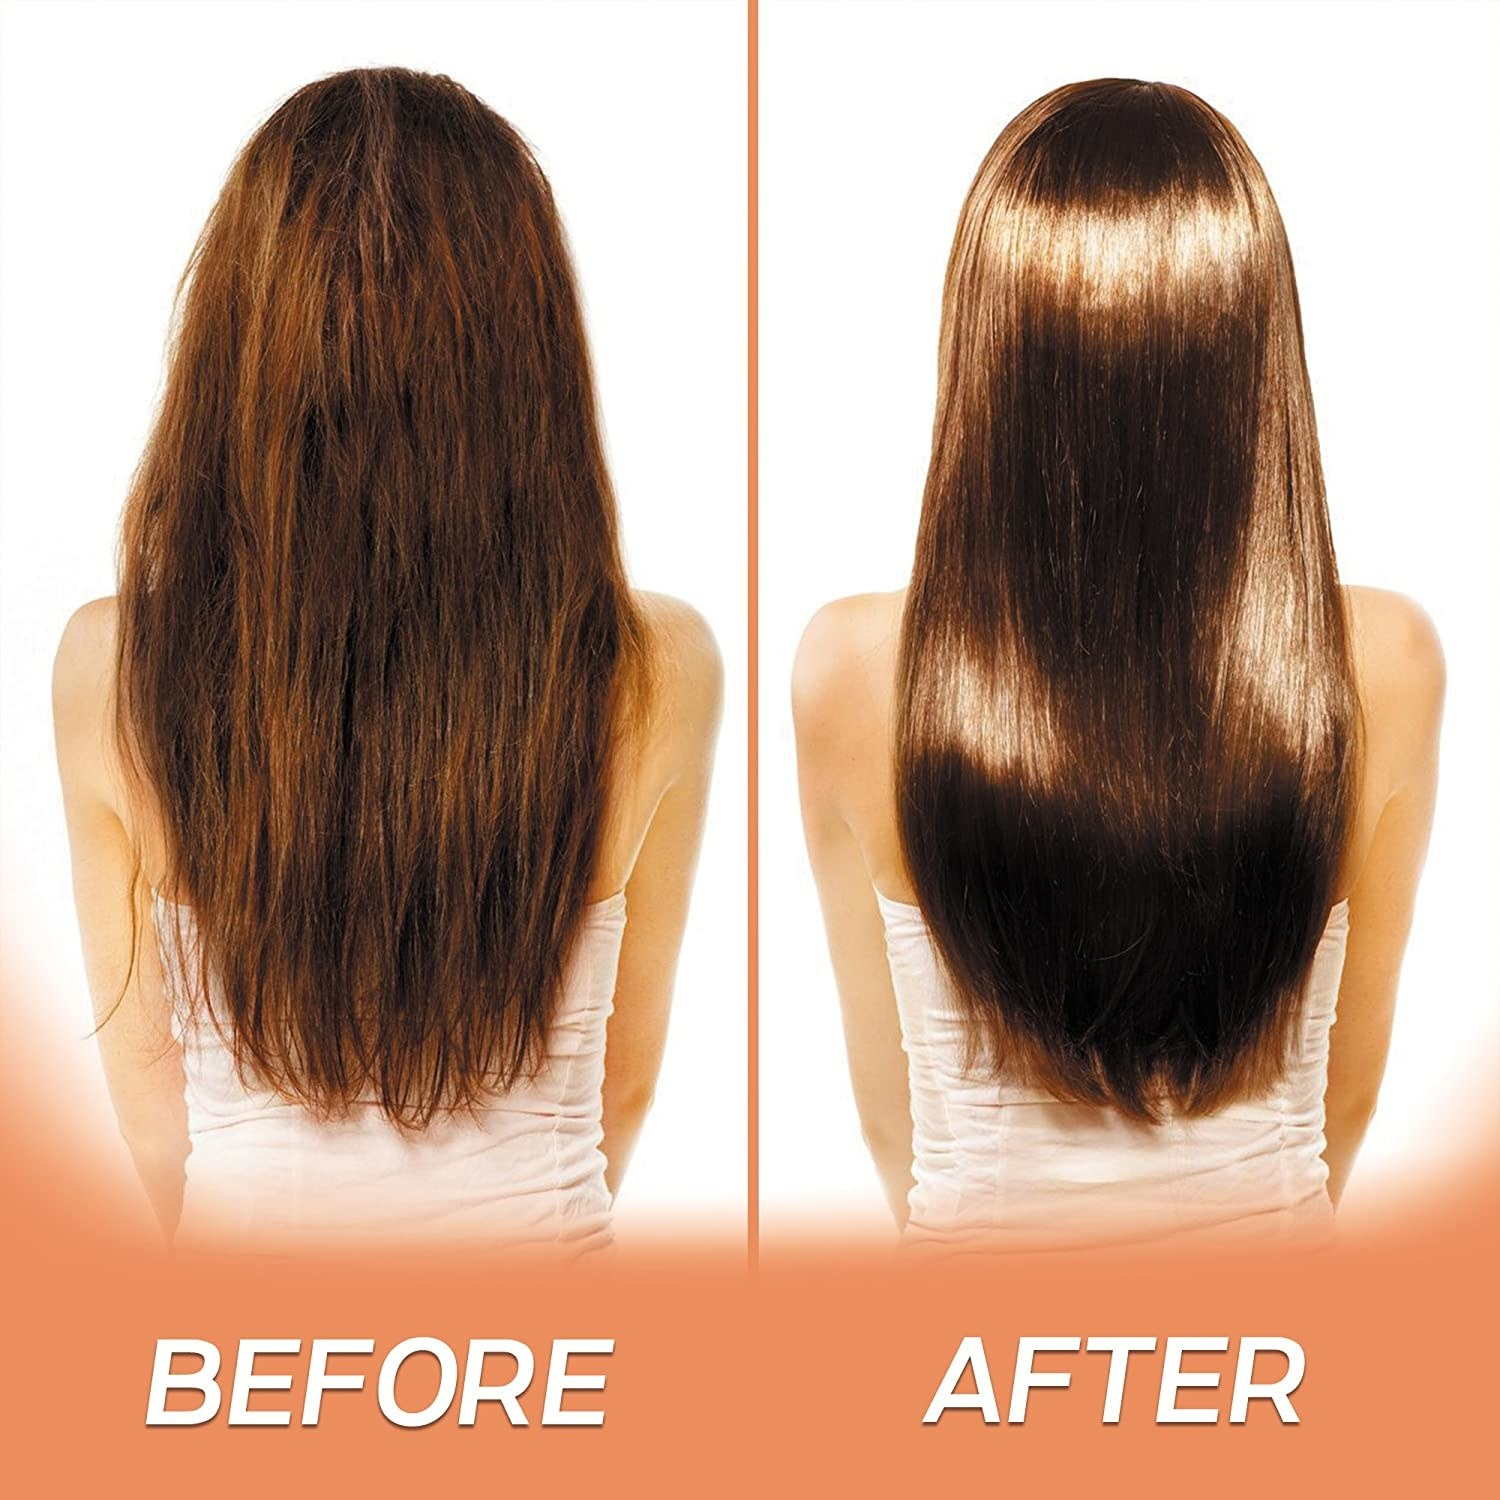 A before and after photo showing that hair is much smoother and shinier after using the hair mask